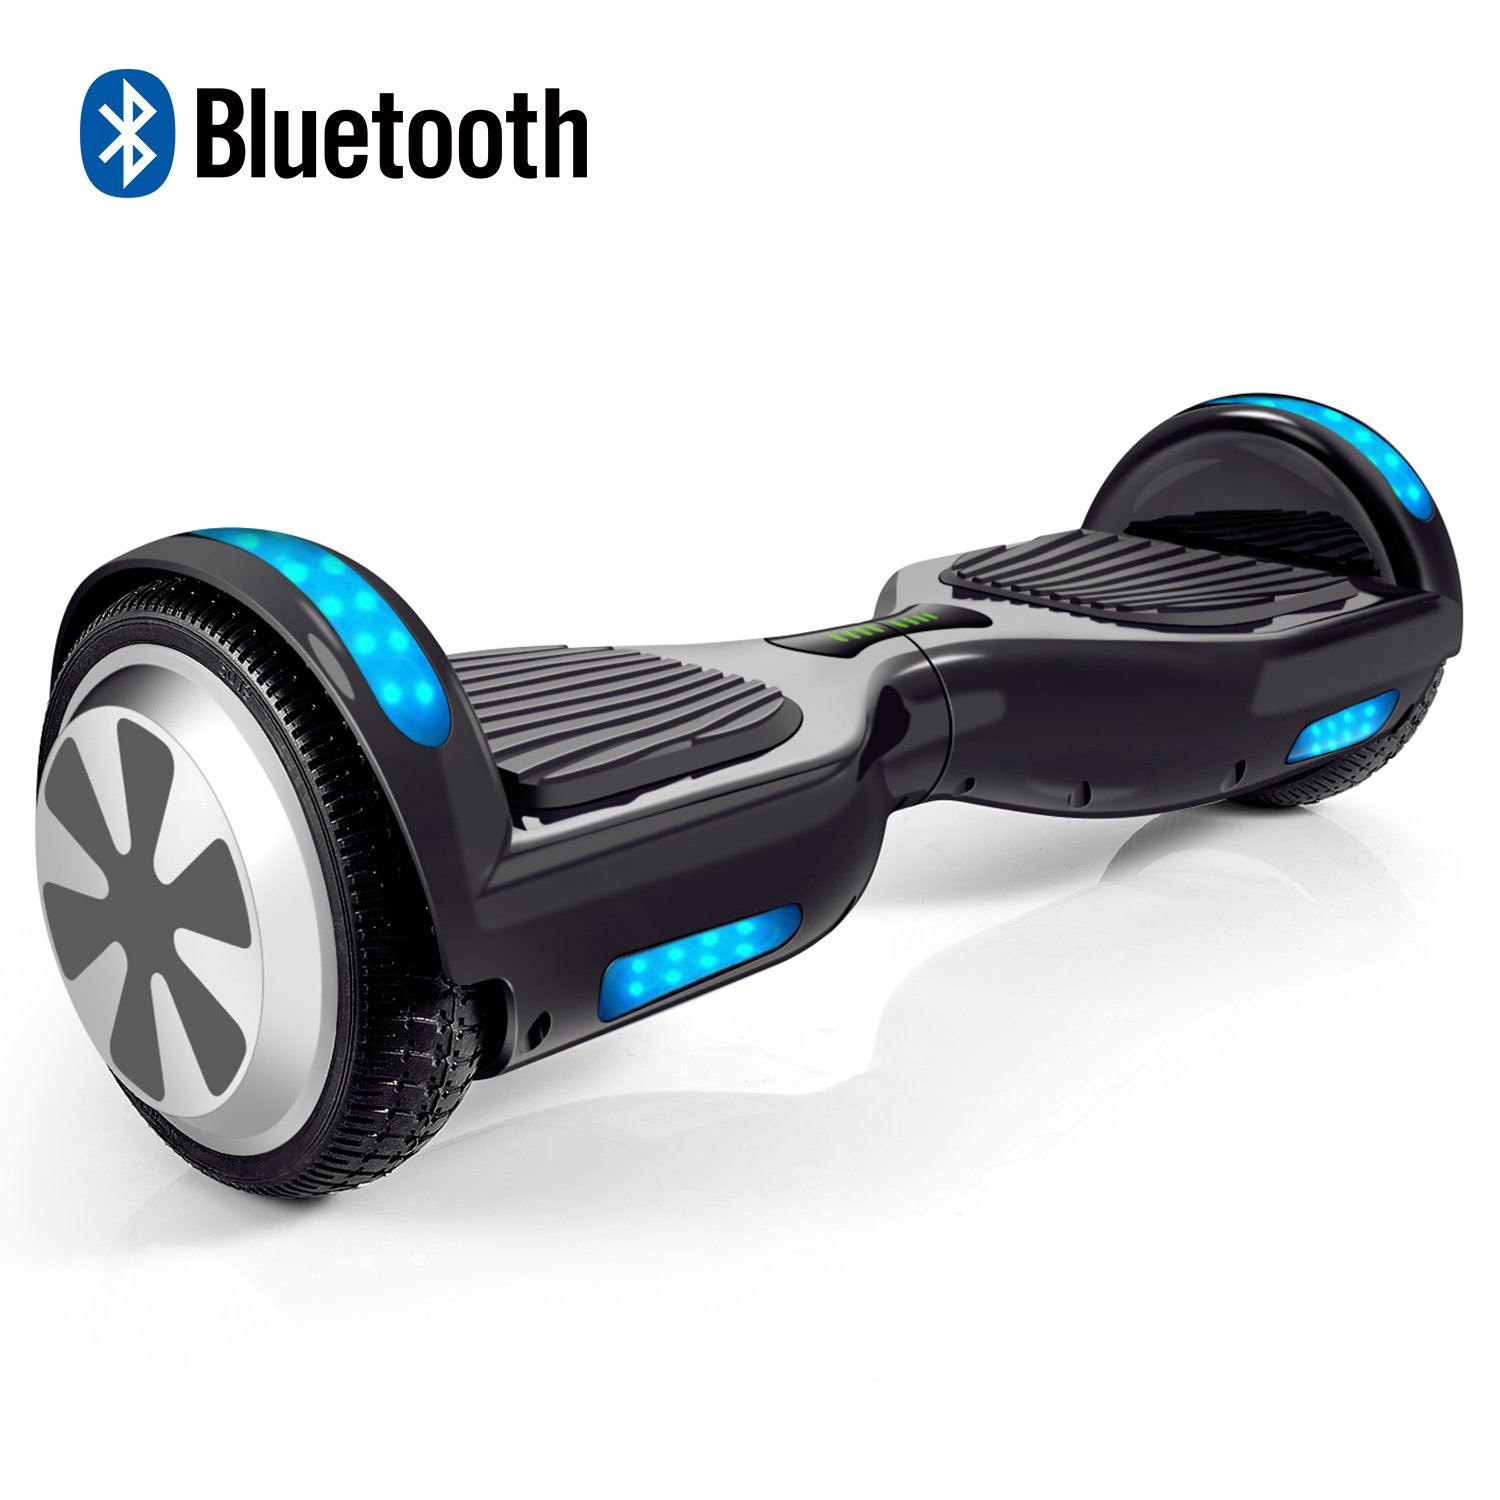 VEEKO Hoverboard Two-wheel Self-balancing Scooter with Bluetooth Speaker - UL2272 Certified Hover Board(9.6Km/hr Max 225lbs Max) with 6.5'' Aluminum Alloy Wheels,250W Dual Motor-Black … by VEEKO